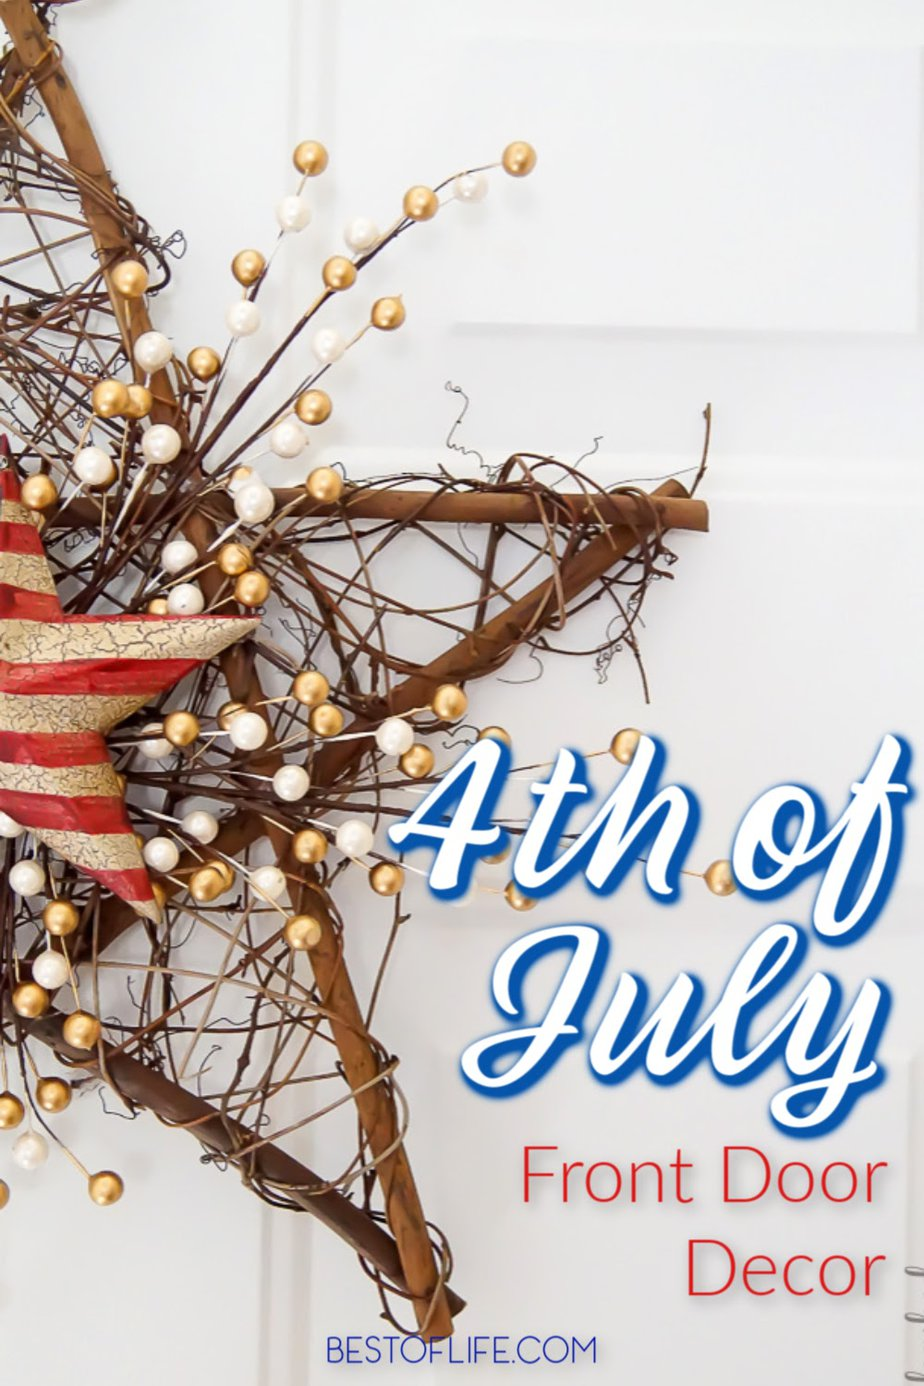 Use the best July 4th decorations to make your front door pop just as much as the fireworks will during the night of the 4th. #DIY #DIYdecor #decorations #4thofJuly #patriotic #patrioticdecor